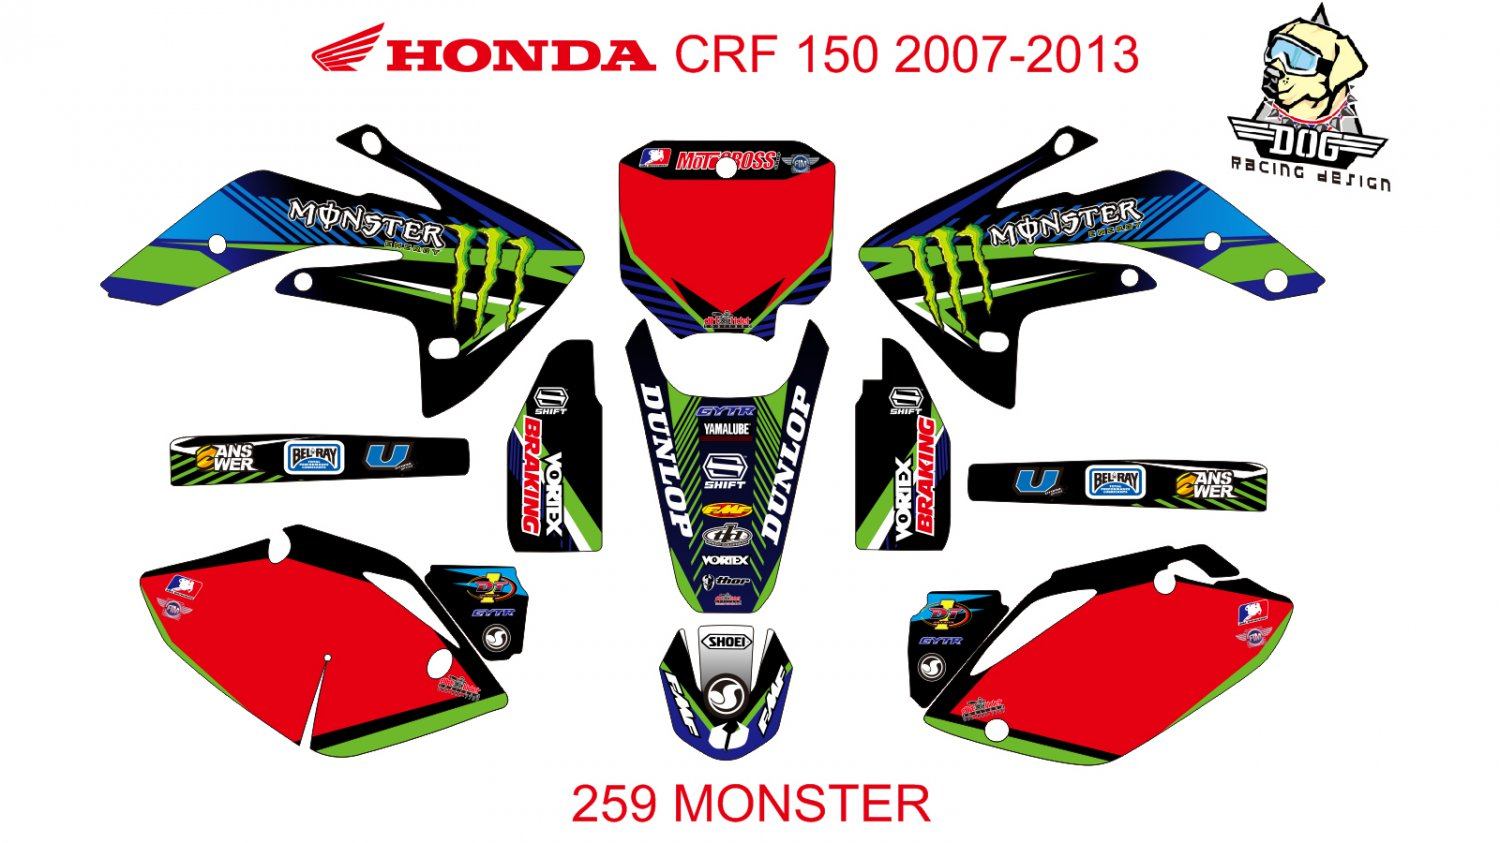 HONDA CRF 150 2007-2013 GRAPHIC DECAL KIT CODE.259